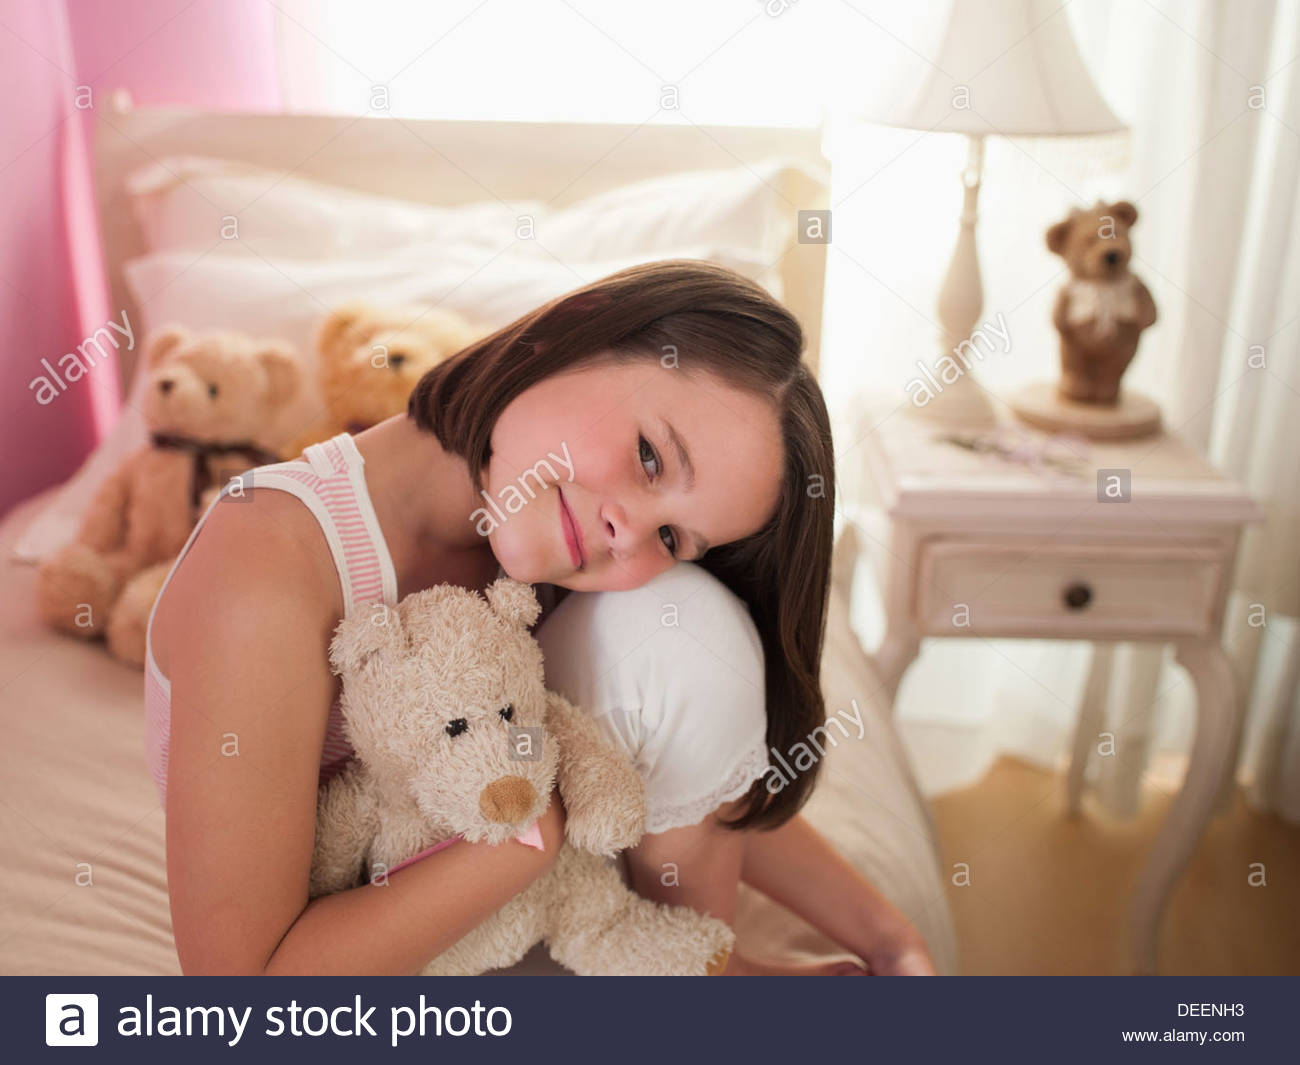 Animal en peluche Girl lying on bed Photo Stock